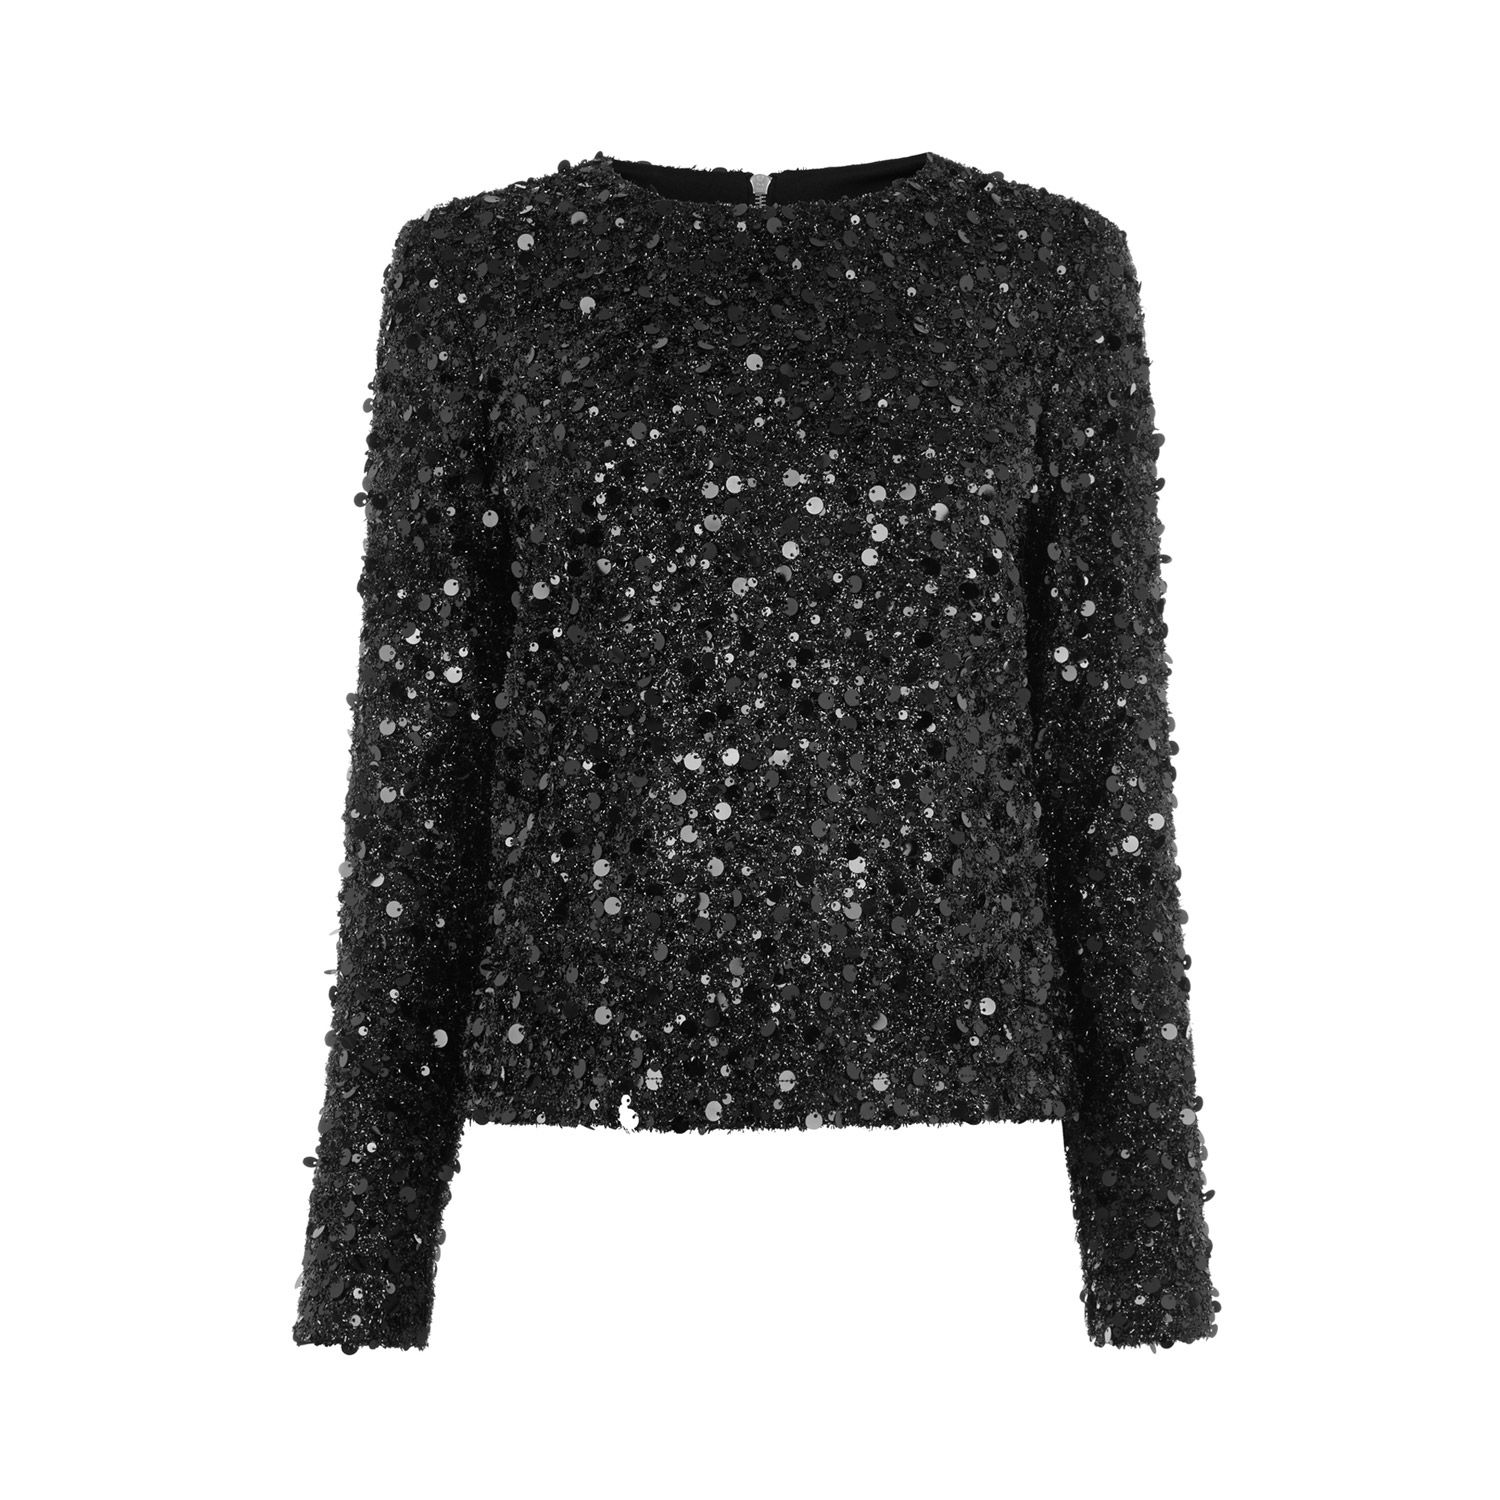 Warehouse, LONG SLEEVE SEQUIN TOP Black 0 | What I Wish I Were ...